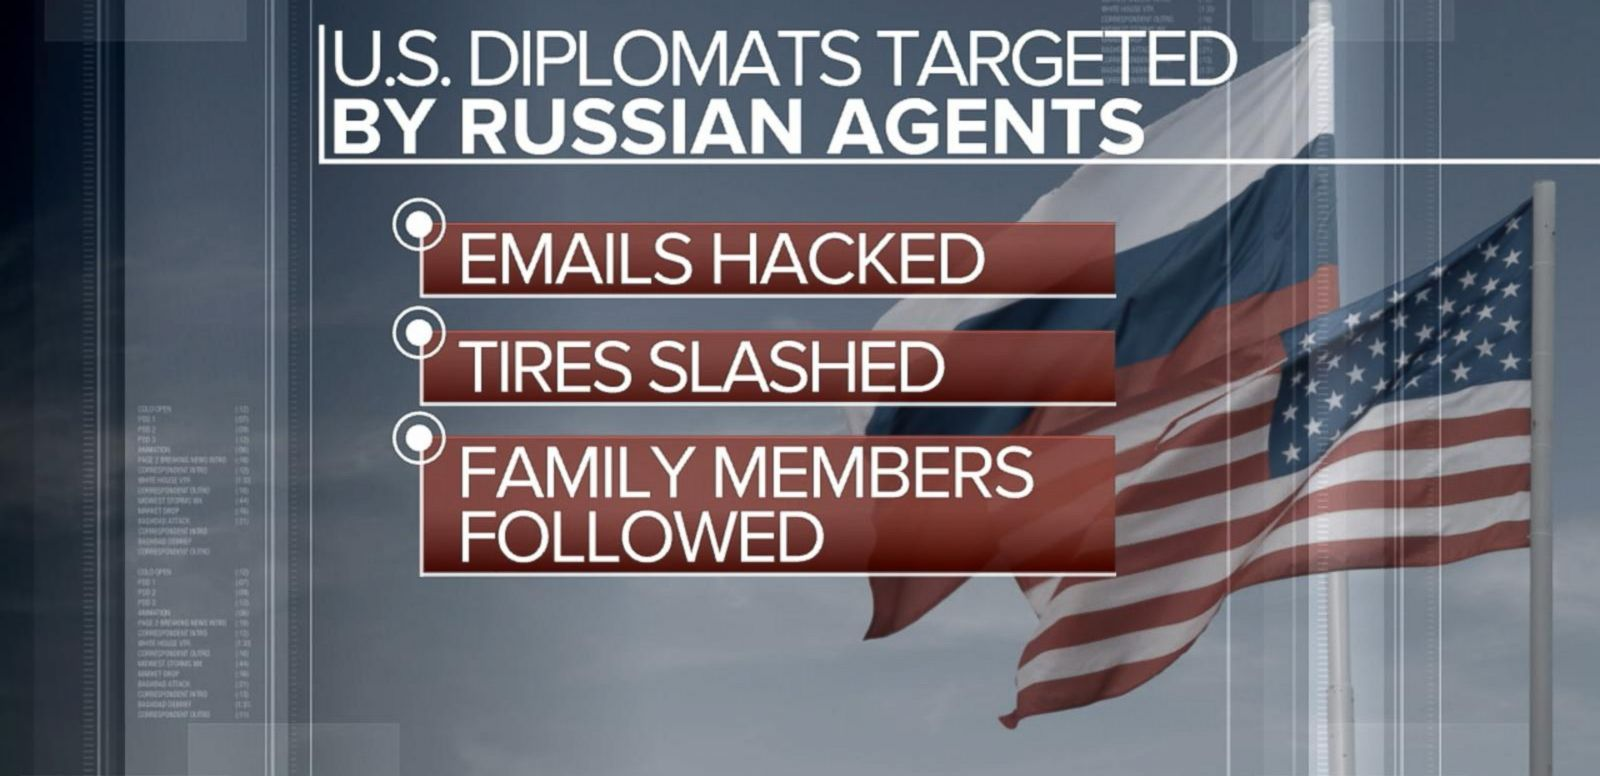 VIDEO: Tensions Ratchet Up Between the US and Russia Over Spy Stalking